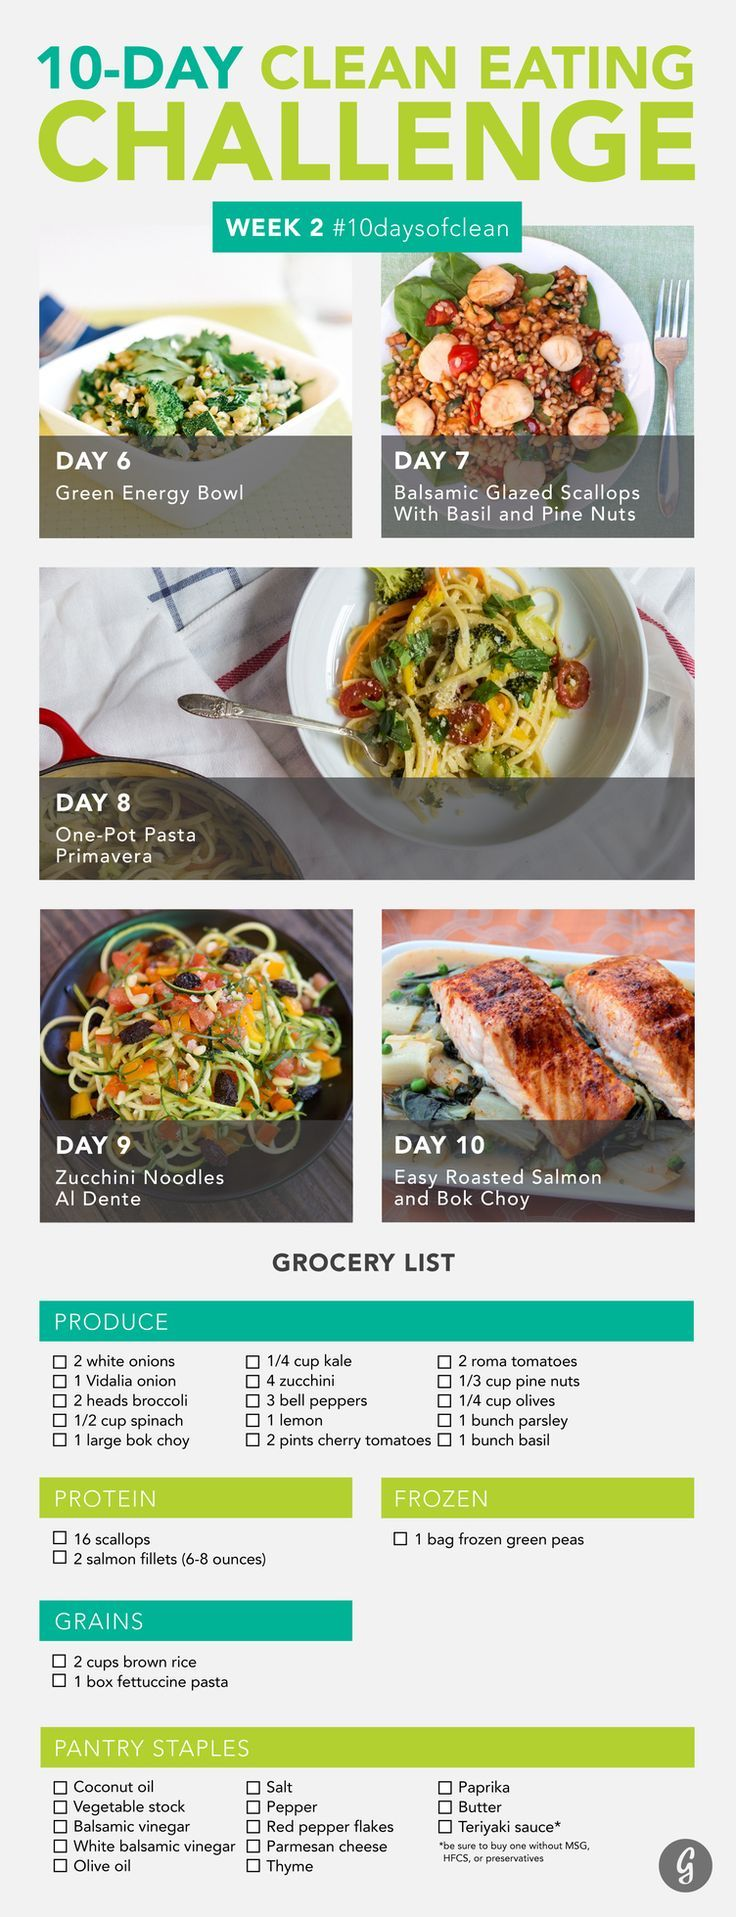 Clean Eating Challenge Week 2 #10daysofclean #healthy #recipes                                                                                                                                                      More